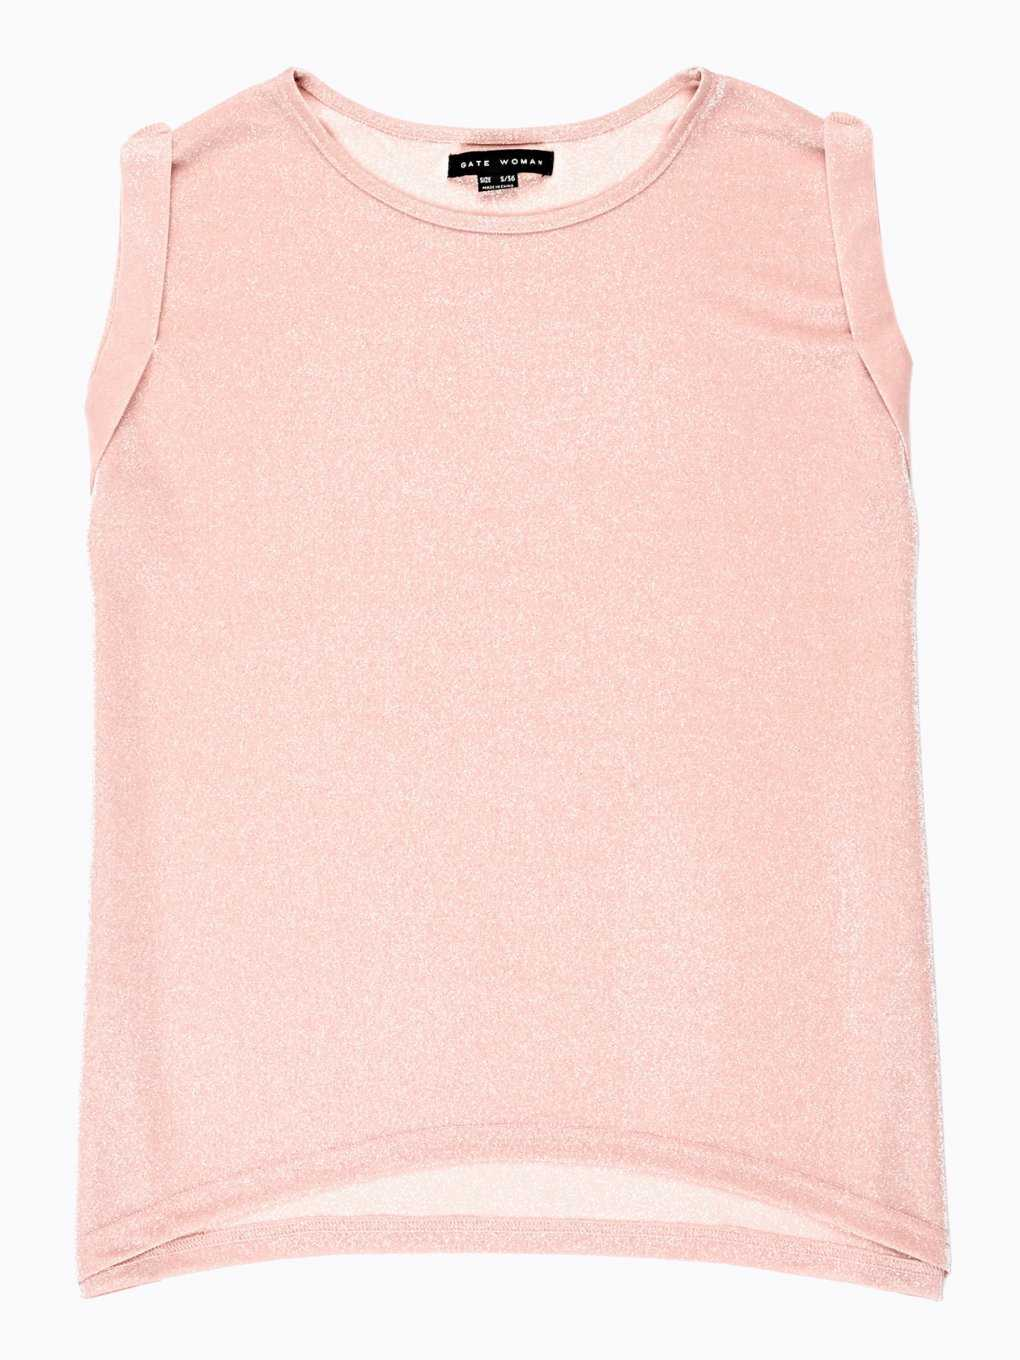 SLEEVELESS TOP WITH METALLIC FIBRE